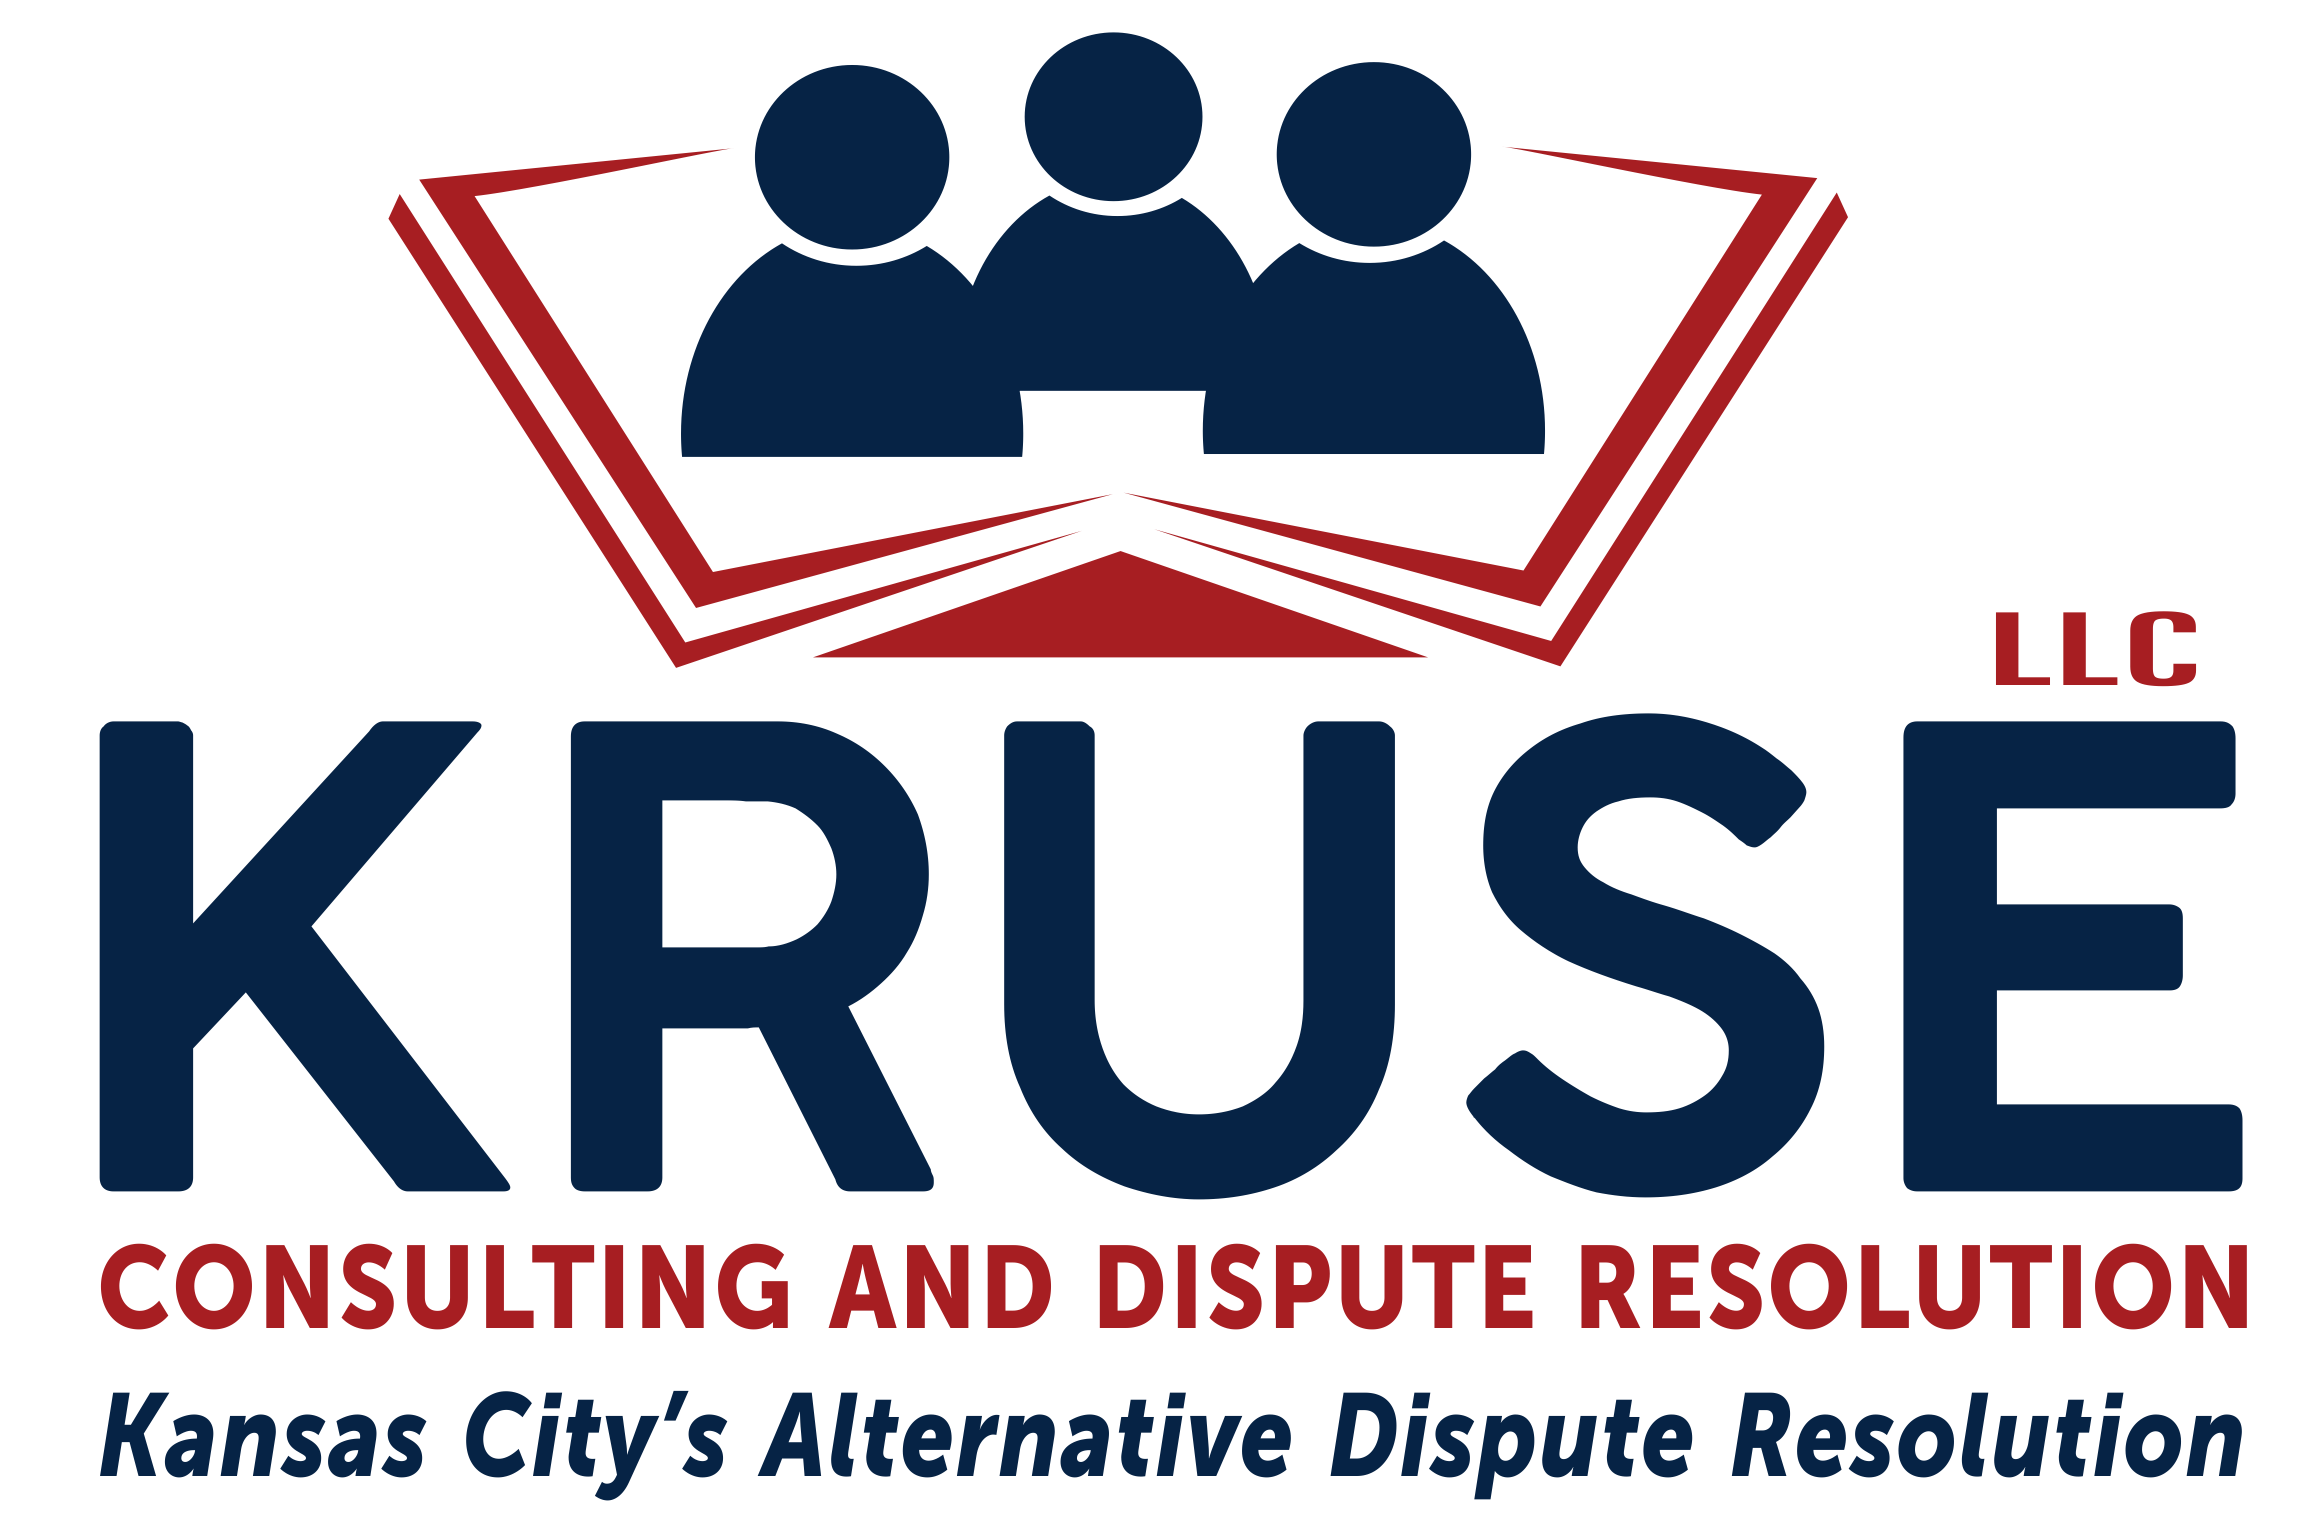 Kruse Legal Consulting And Dispute Resolution, LLC